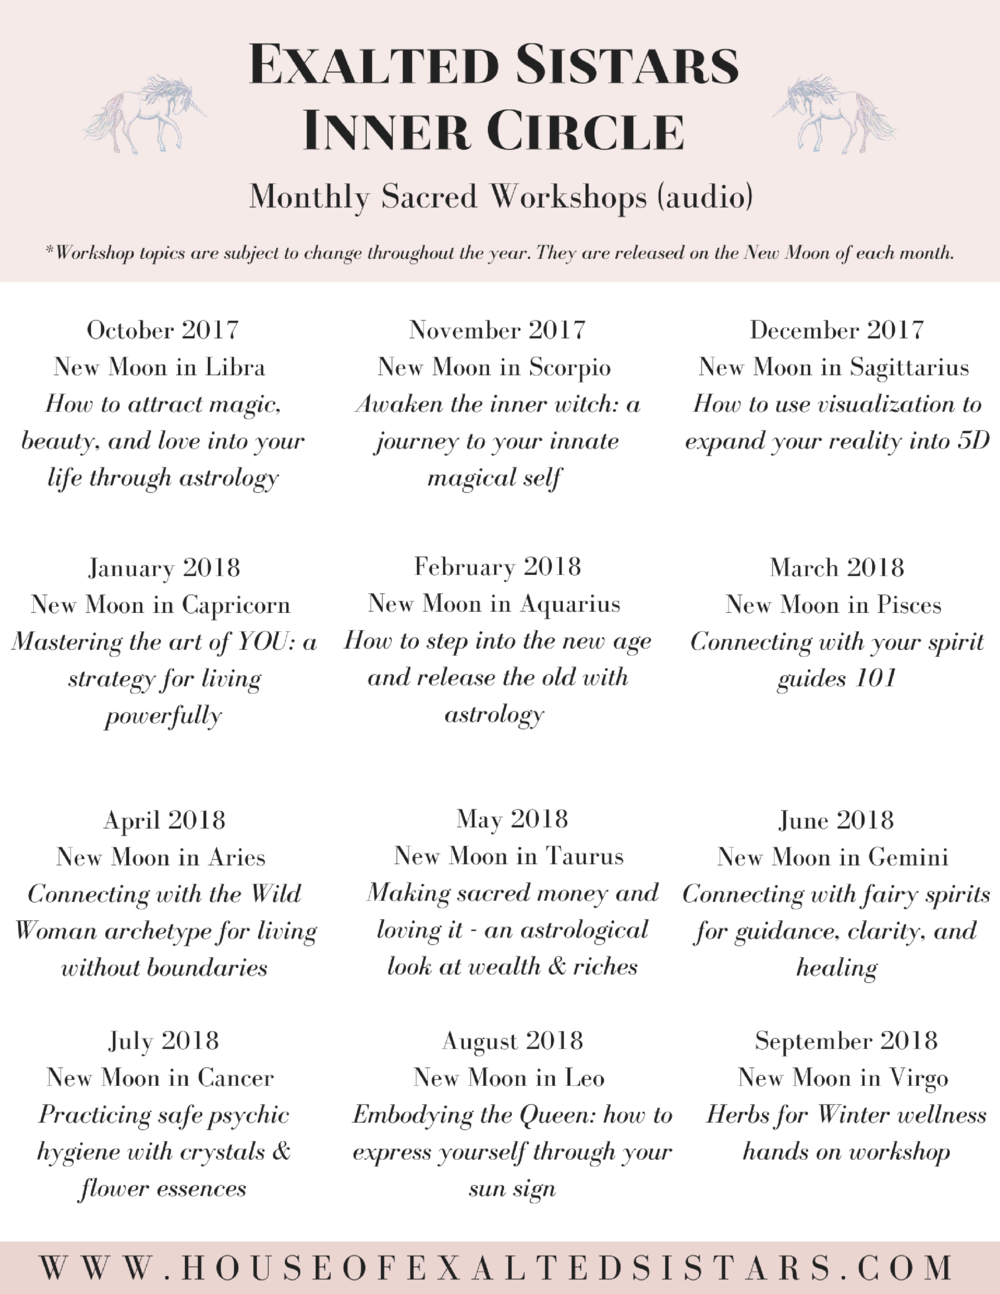 Download the workshop schedule